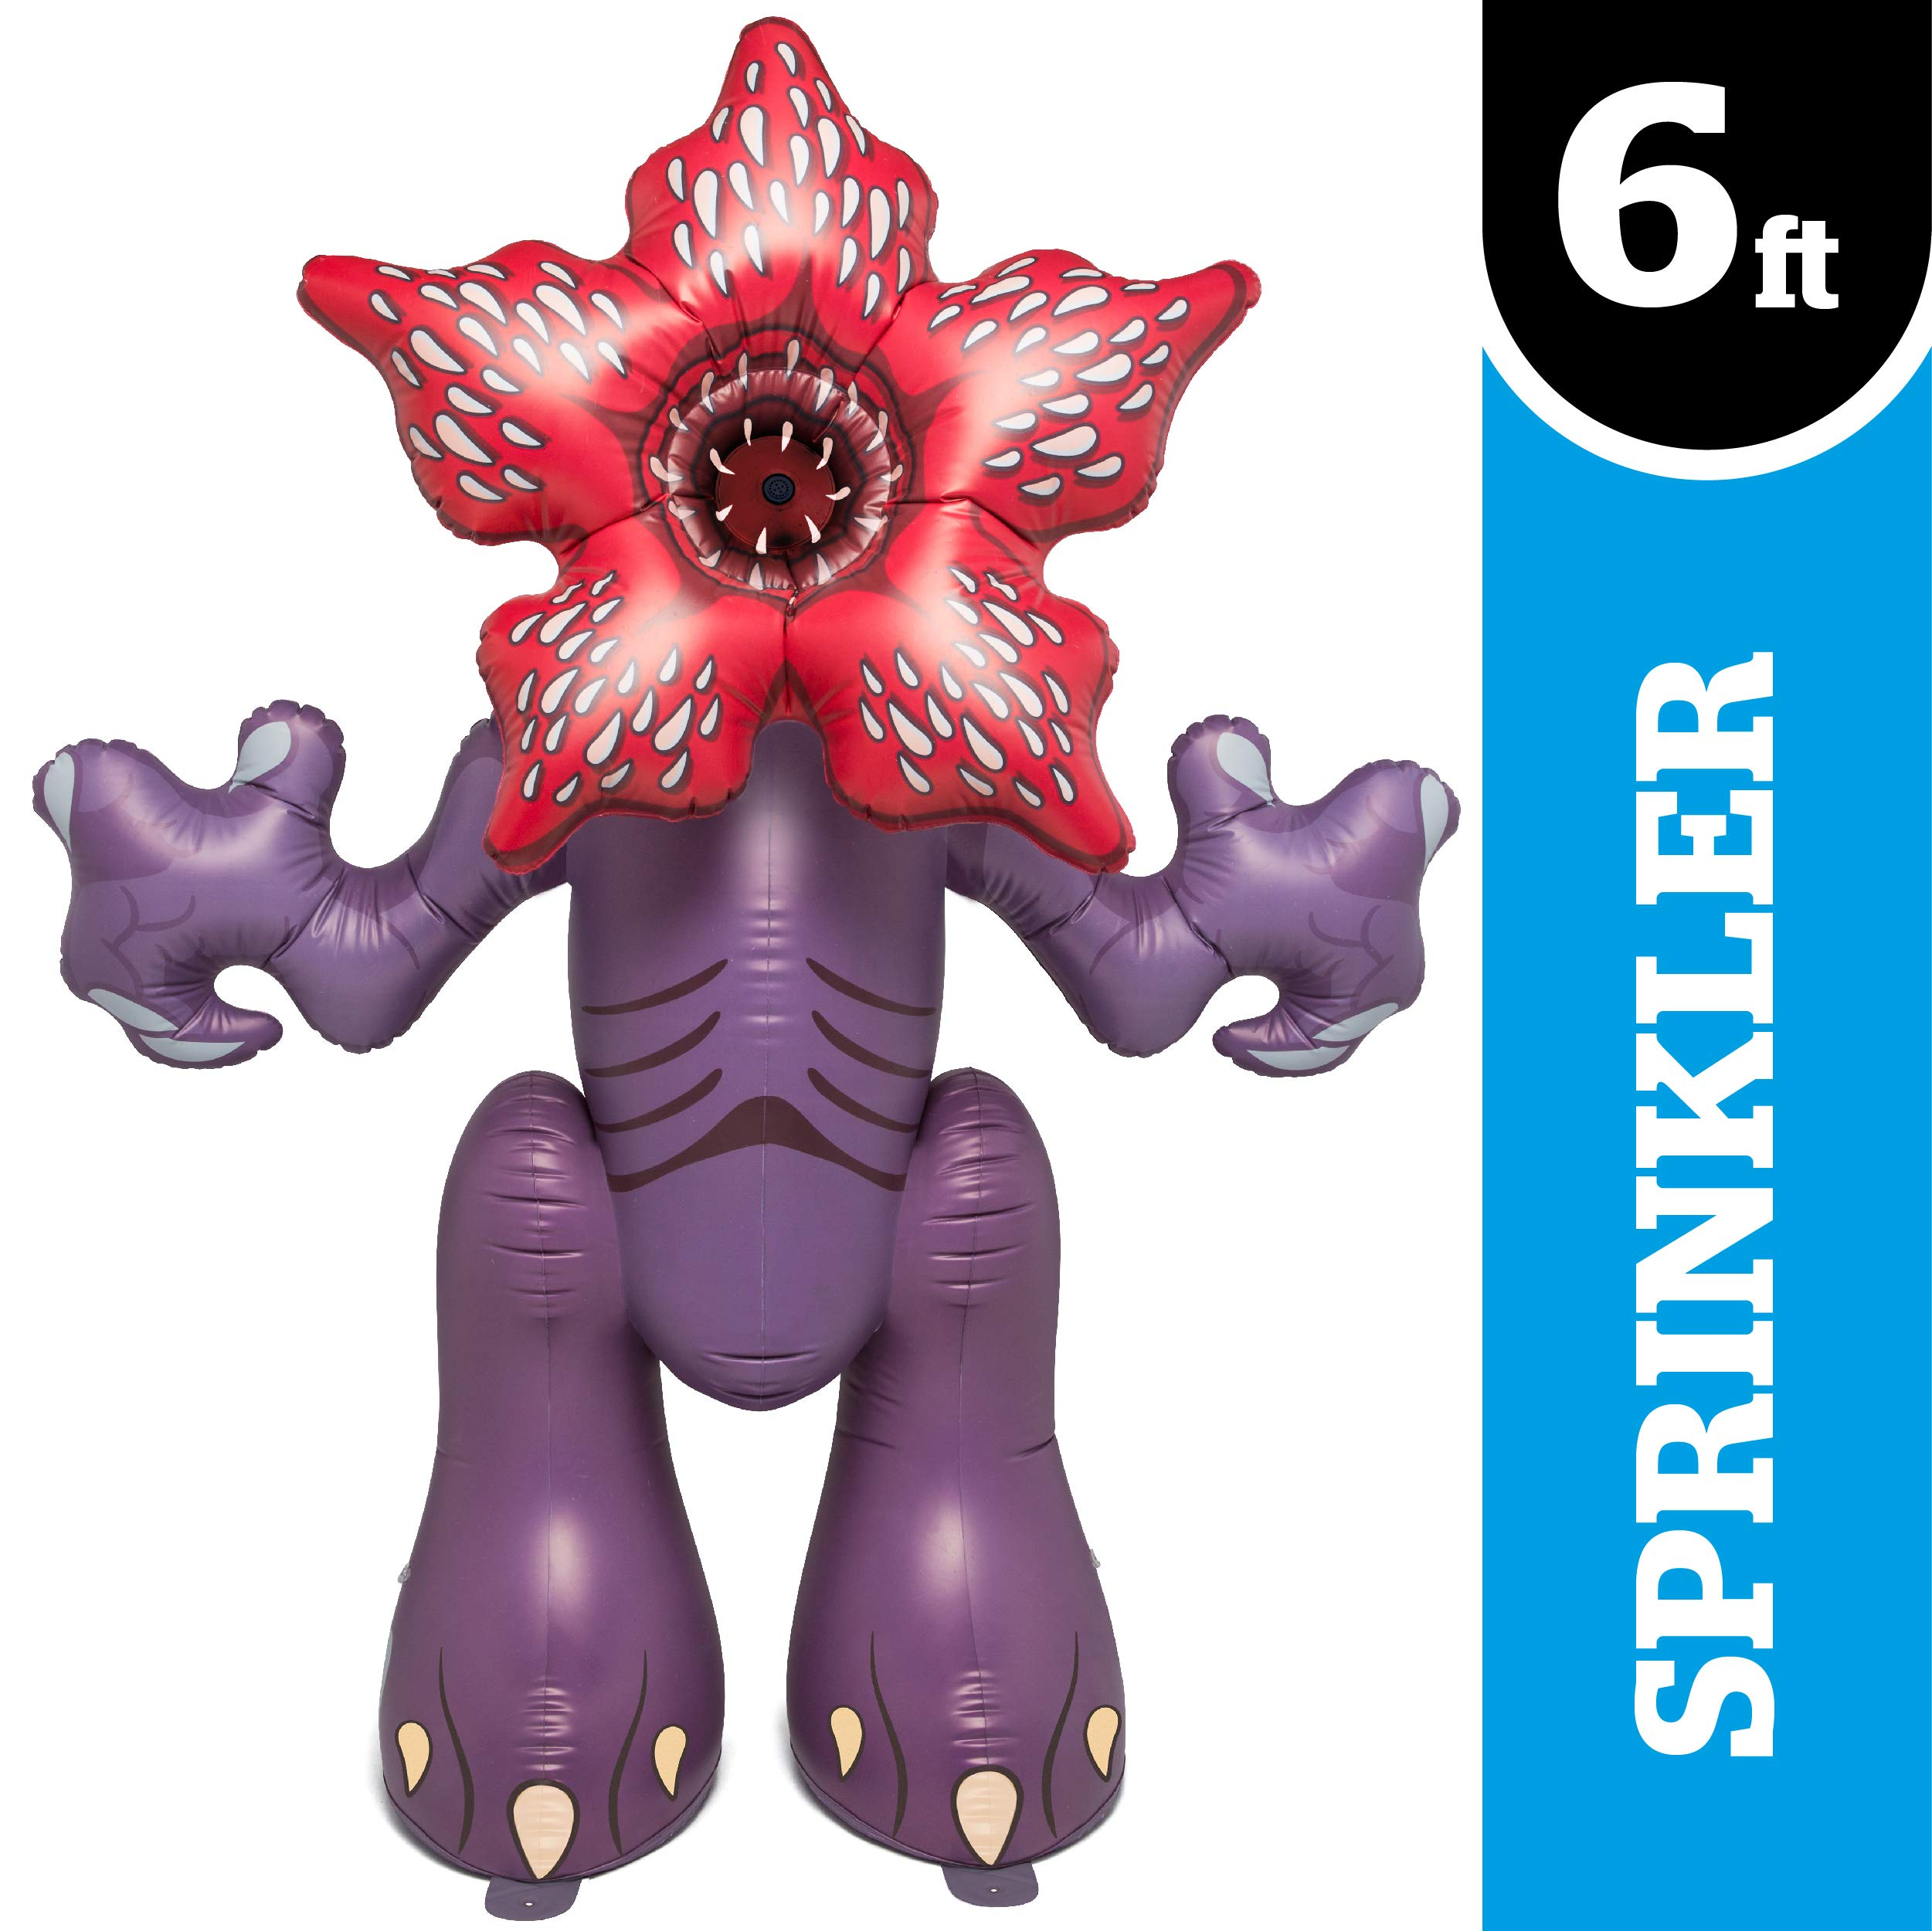 BigMouth Inc. Stranger Things Demogorgon Yard Sprinkler, Huge 6.5 Foot Tall Inflatable Sprinkler with Stranger Things Theme, Easy to Inflate/Deflate and Clean, Makes a Great Gift Idea by BigMouth Inc